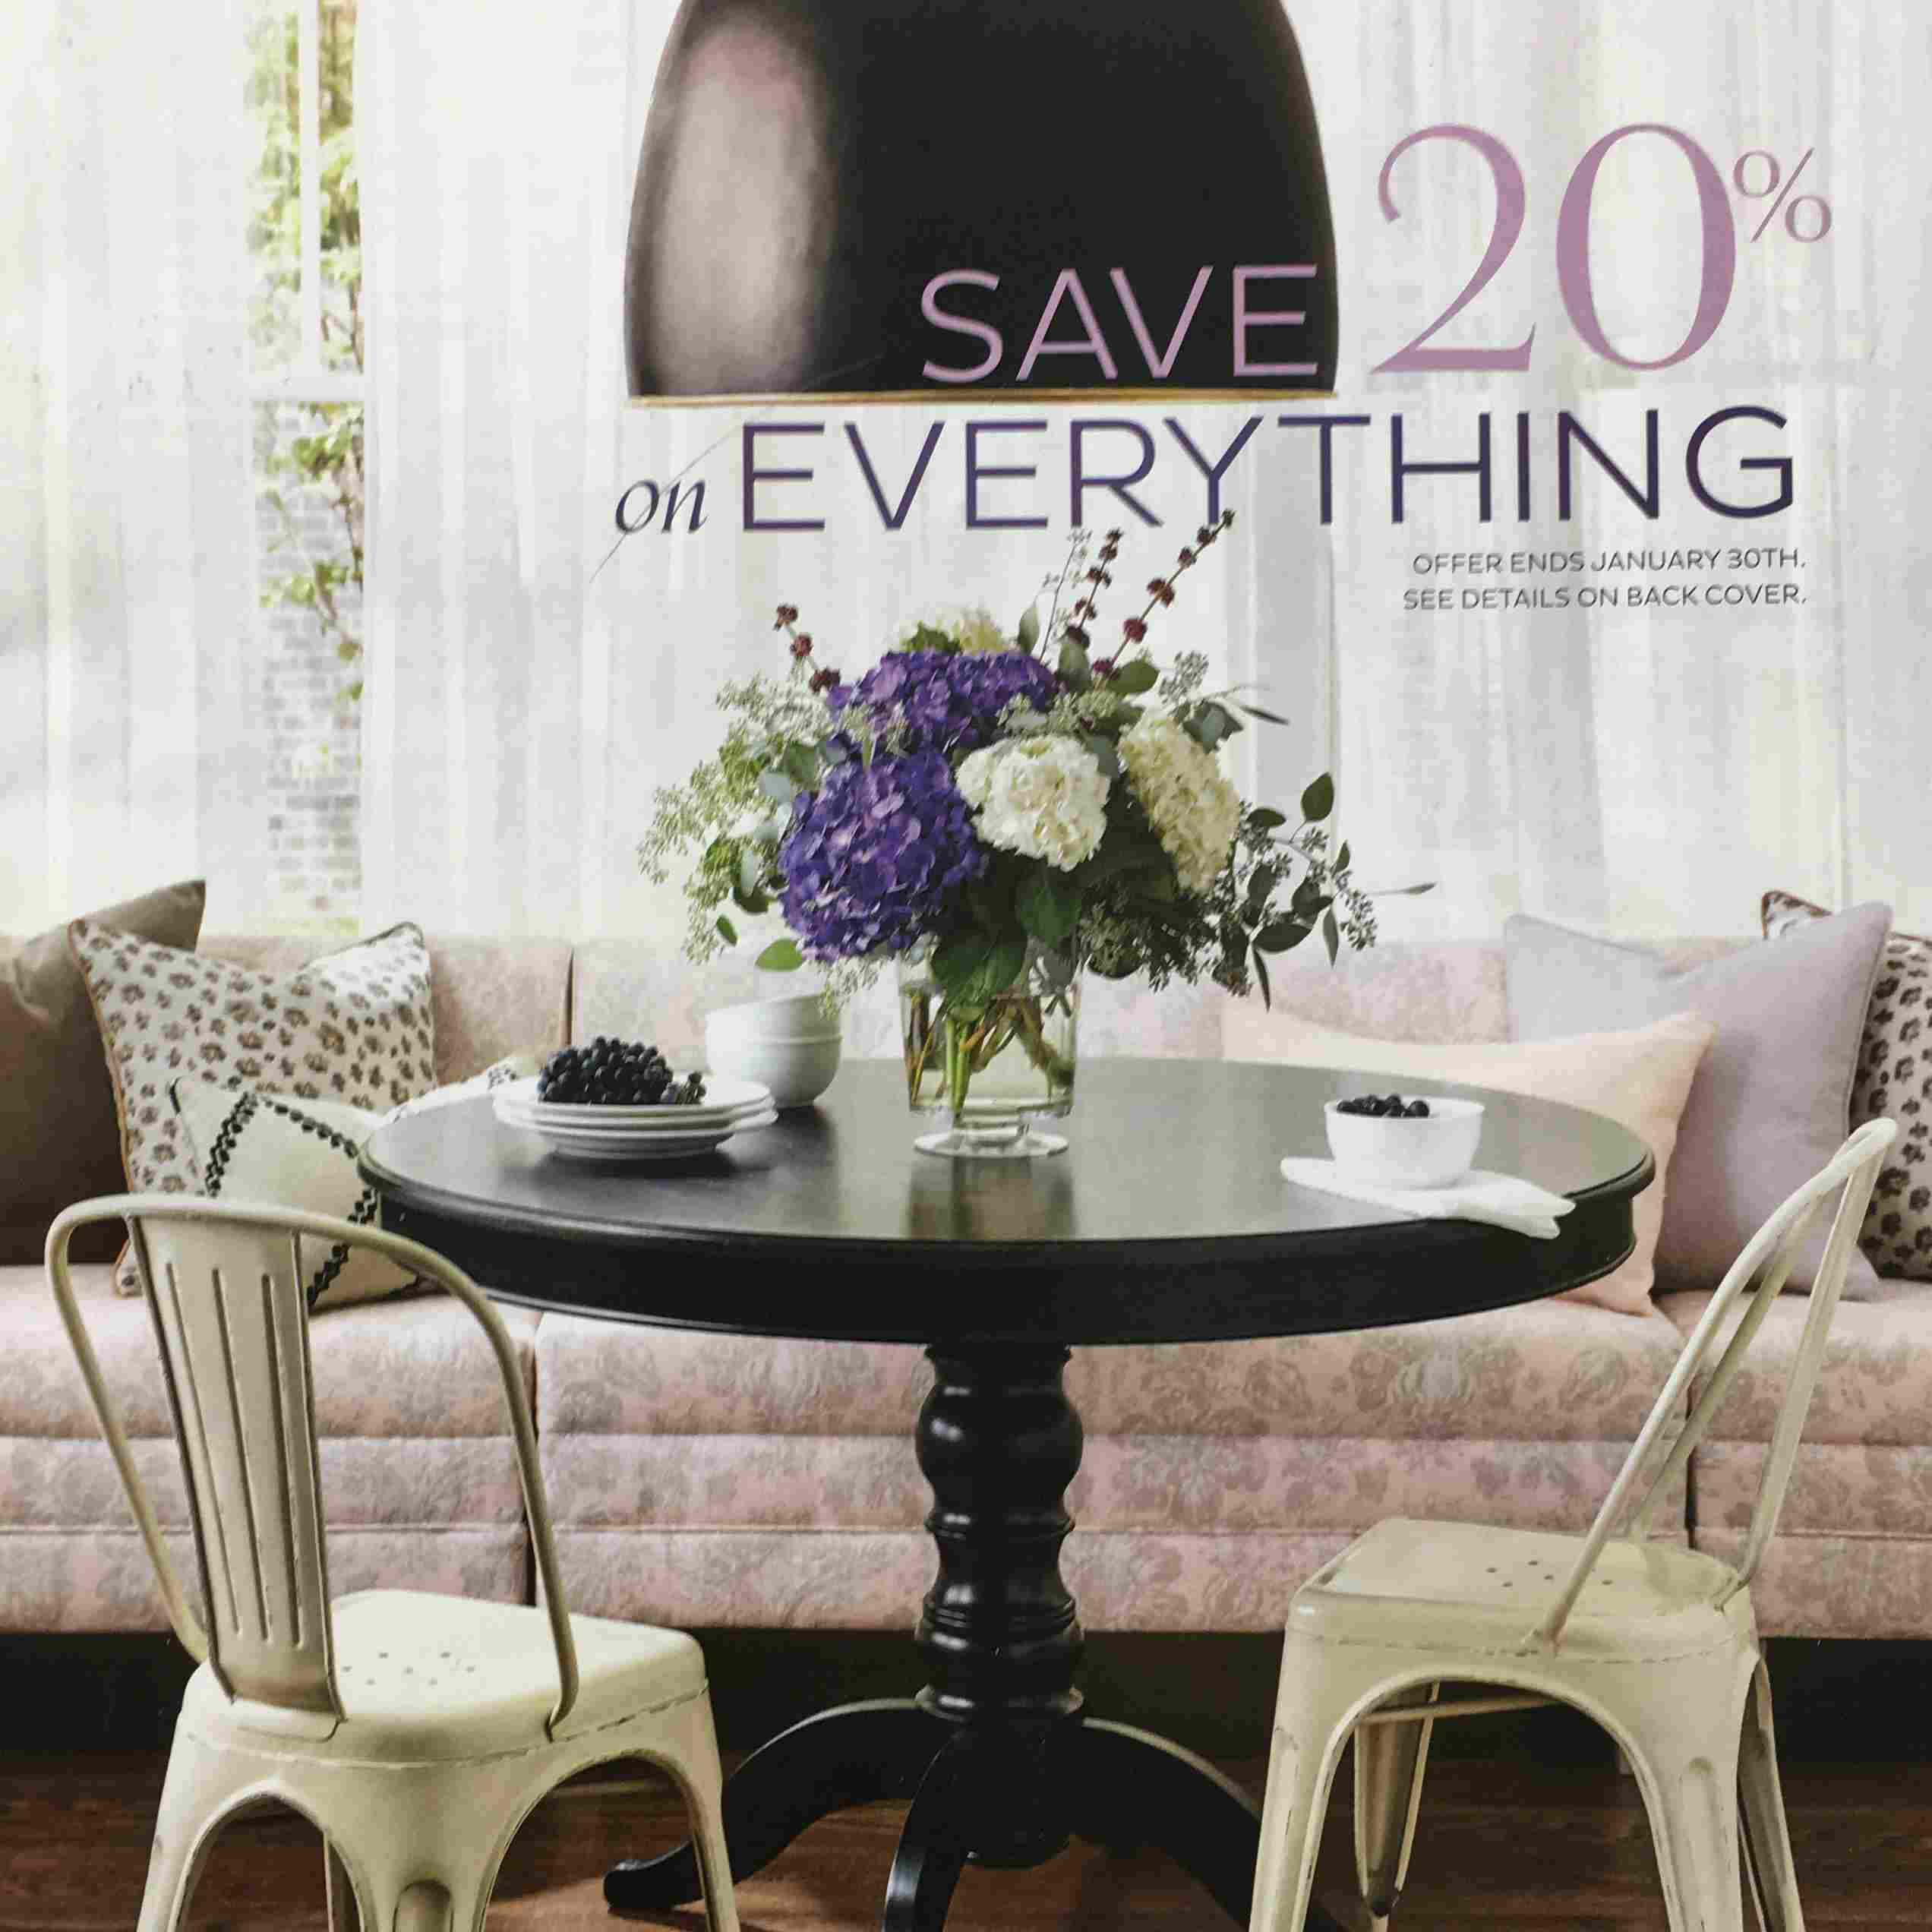 Discount Home Decor Catalogs: Free Mail Order Furniture Catalogs